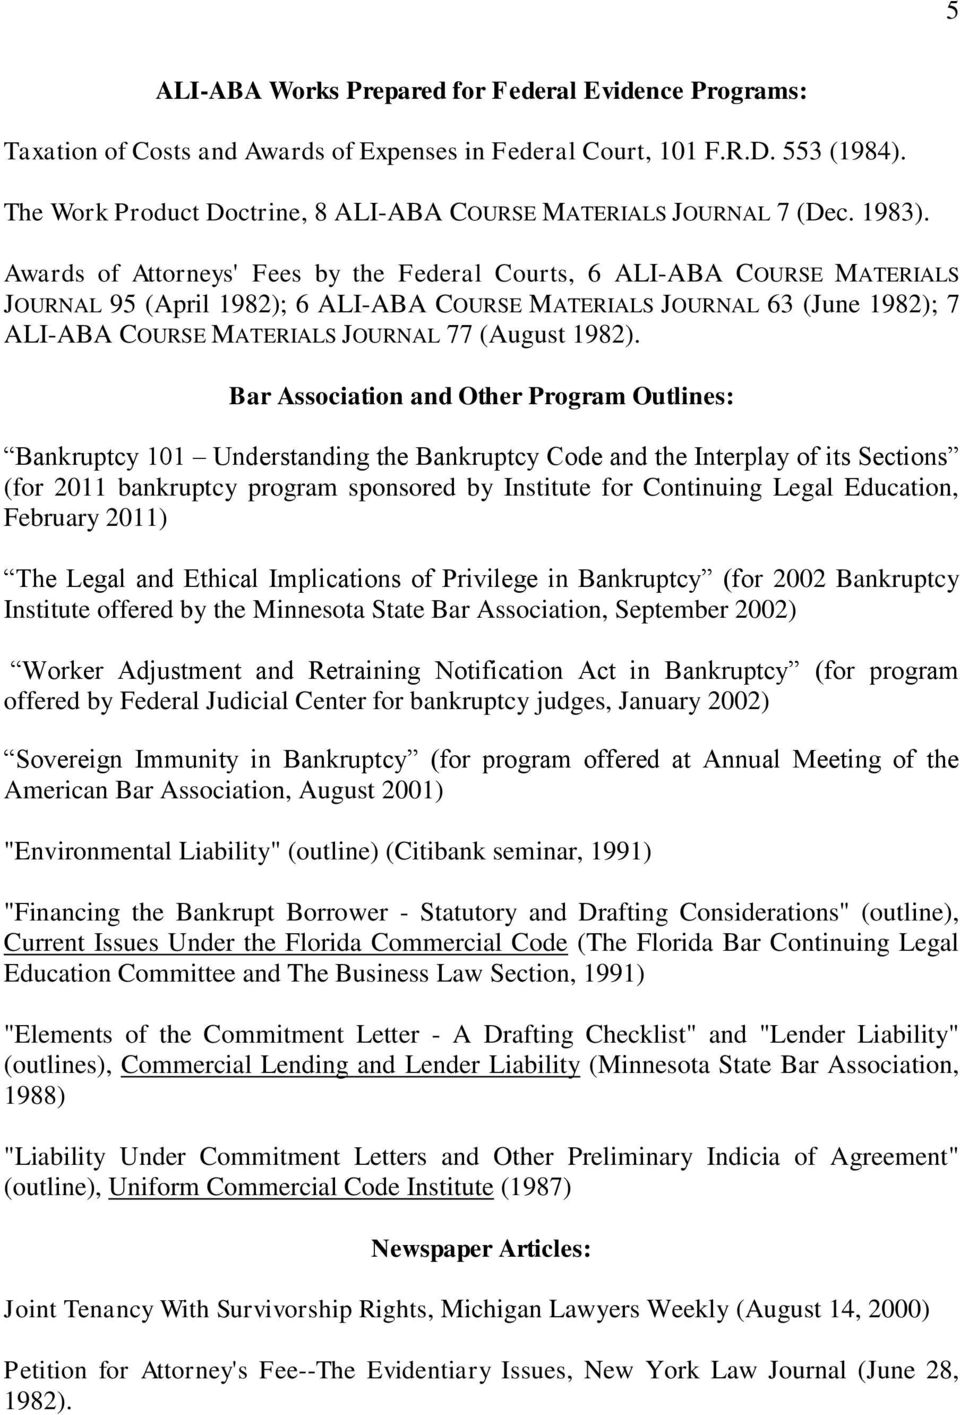 Awards of Attorneys' Fees by the Federal Courts, 6 ALI-ABA COURSE MATERIALS JOURNAL 95 (April 1982); 6 ALI-ABA COURSE MATERIALS JOURNAL 63 (June 1982); 7 ALI-ABA COURSE MATERIALS JOURNAL 77 (August